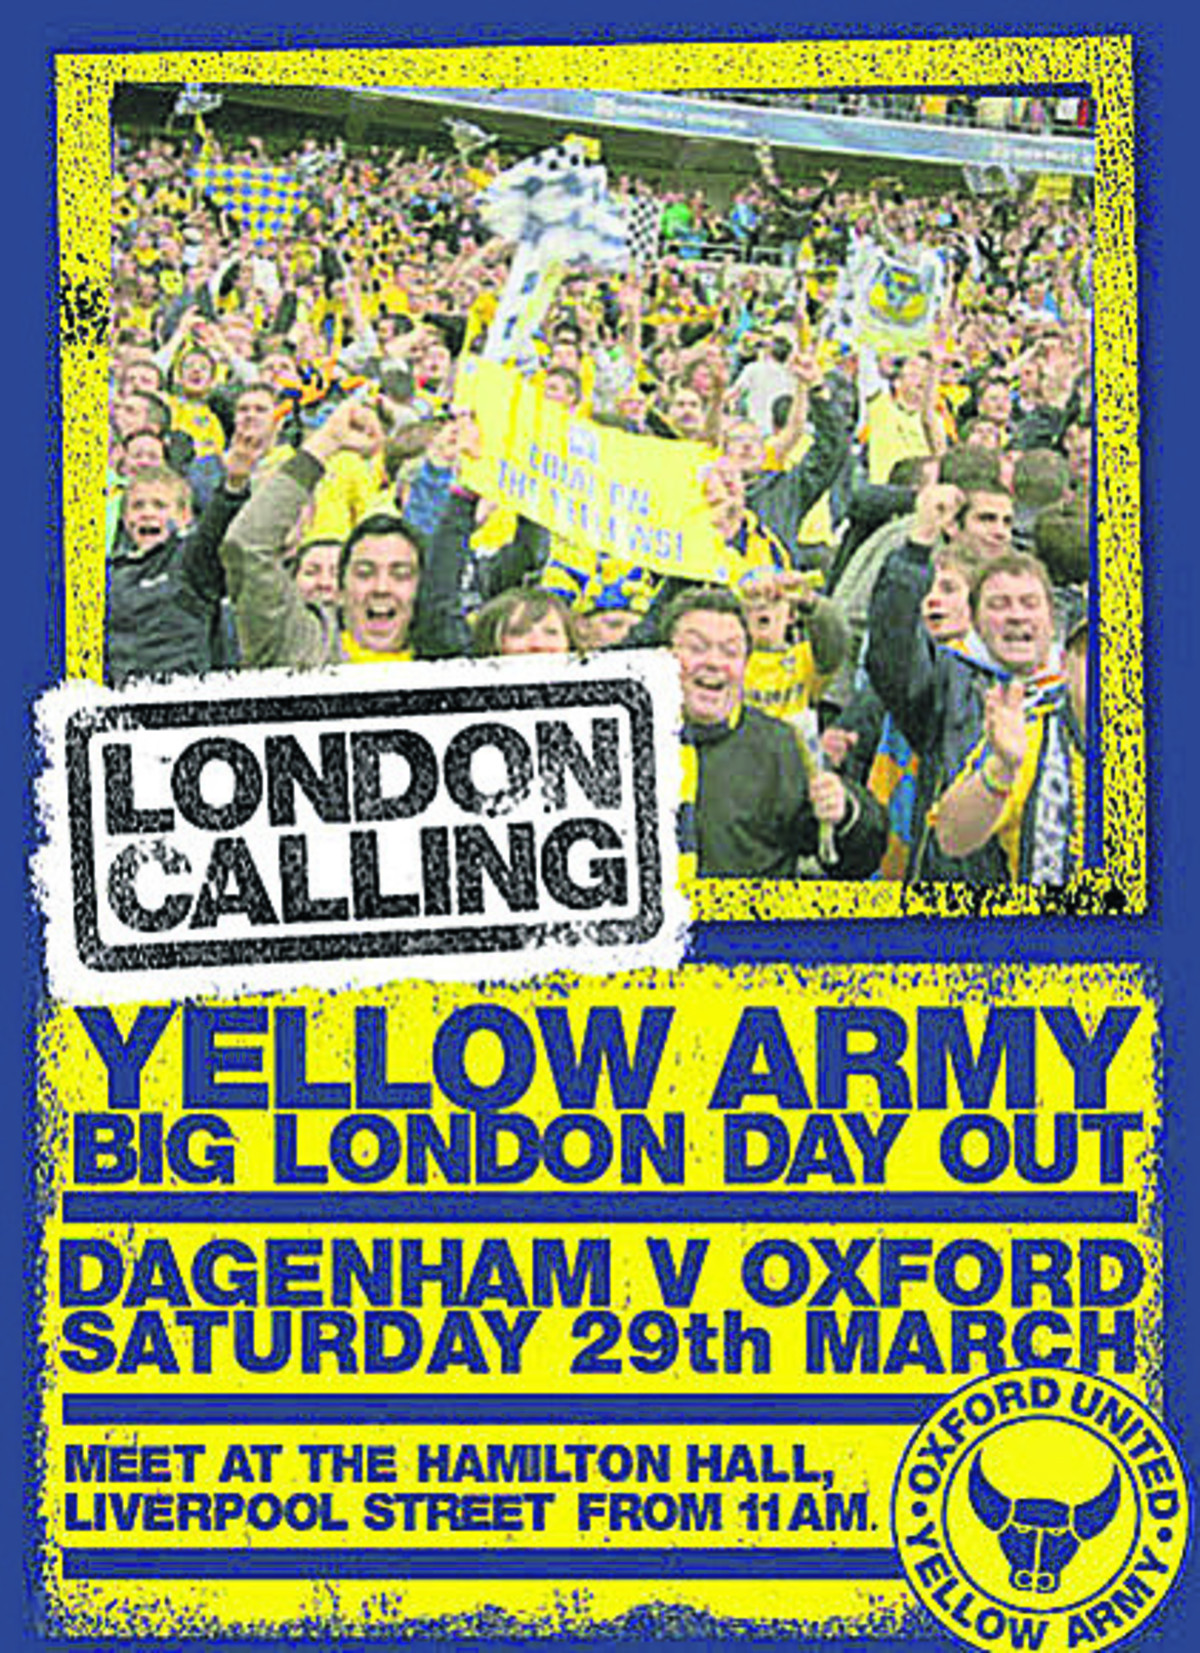 The Yellow Army's flier for tomorrow's game